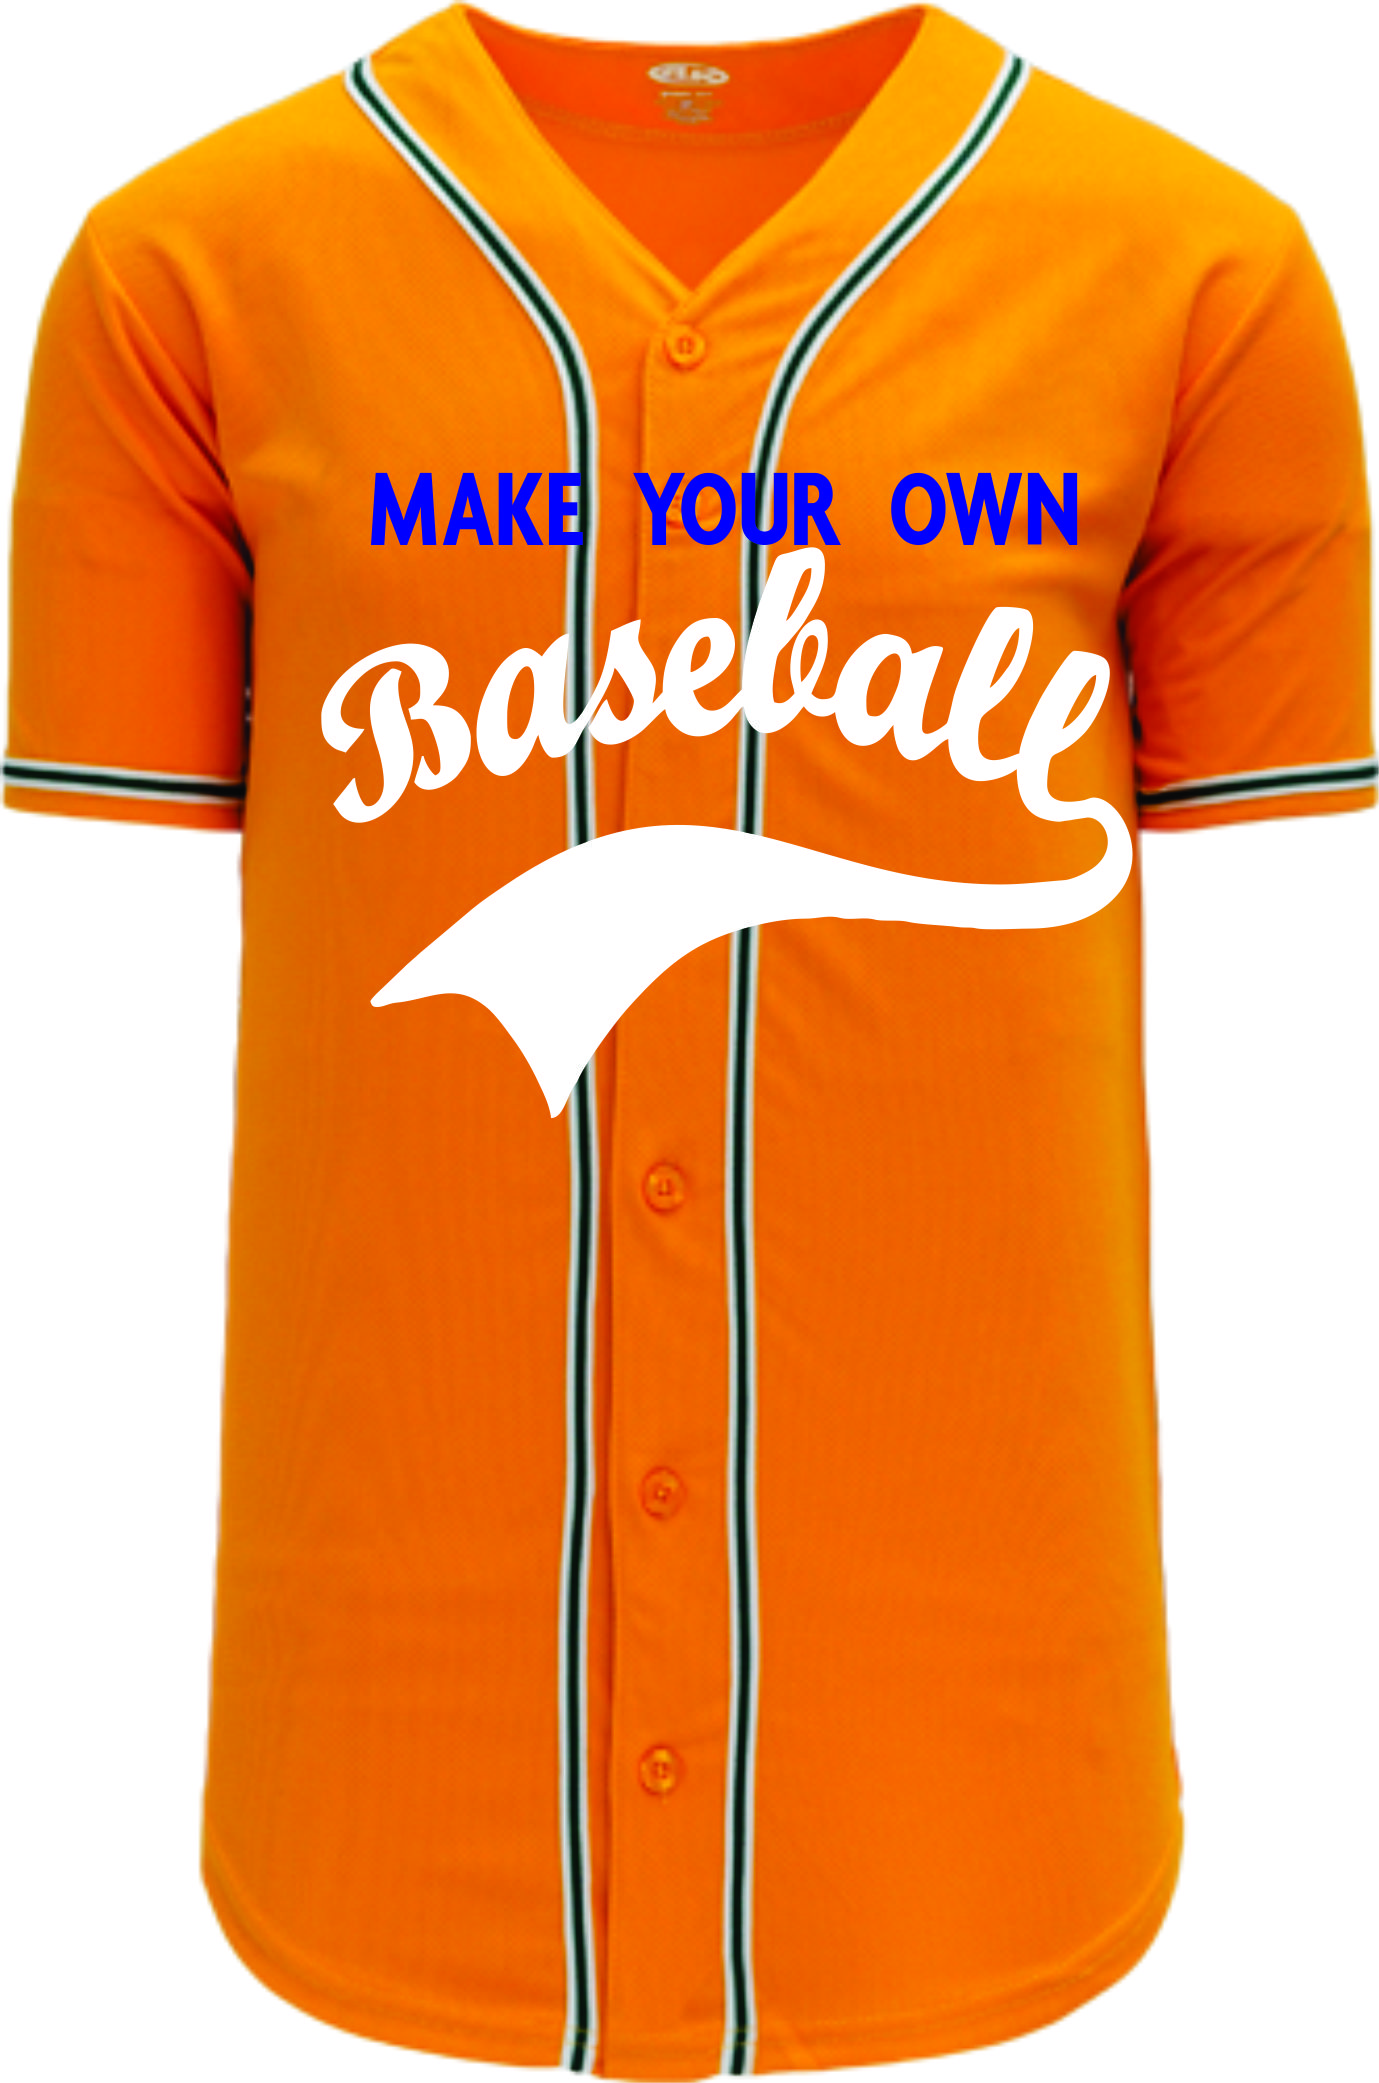 Custom Baseball Jerseys |  Oakland MLB  Blank baseball jersey - gold | Design Your Own | No Min